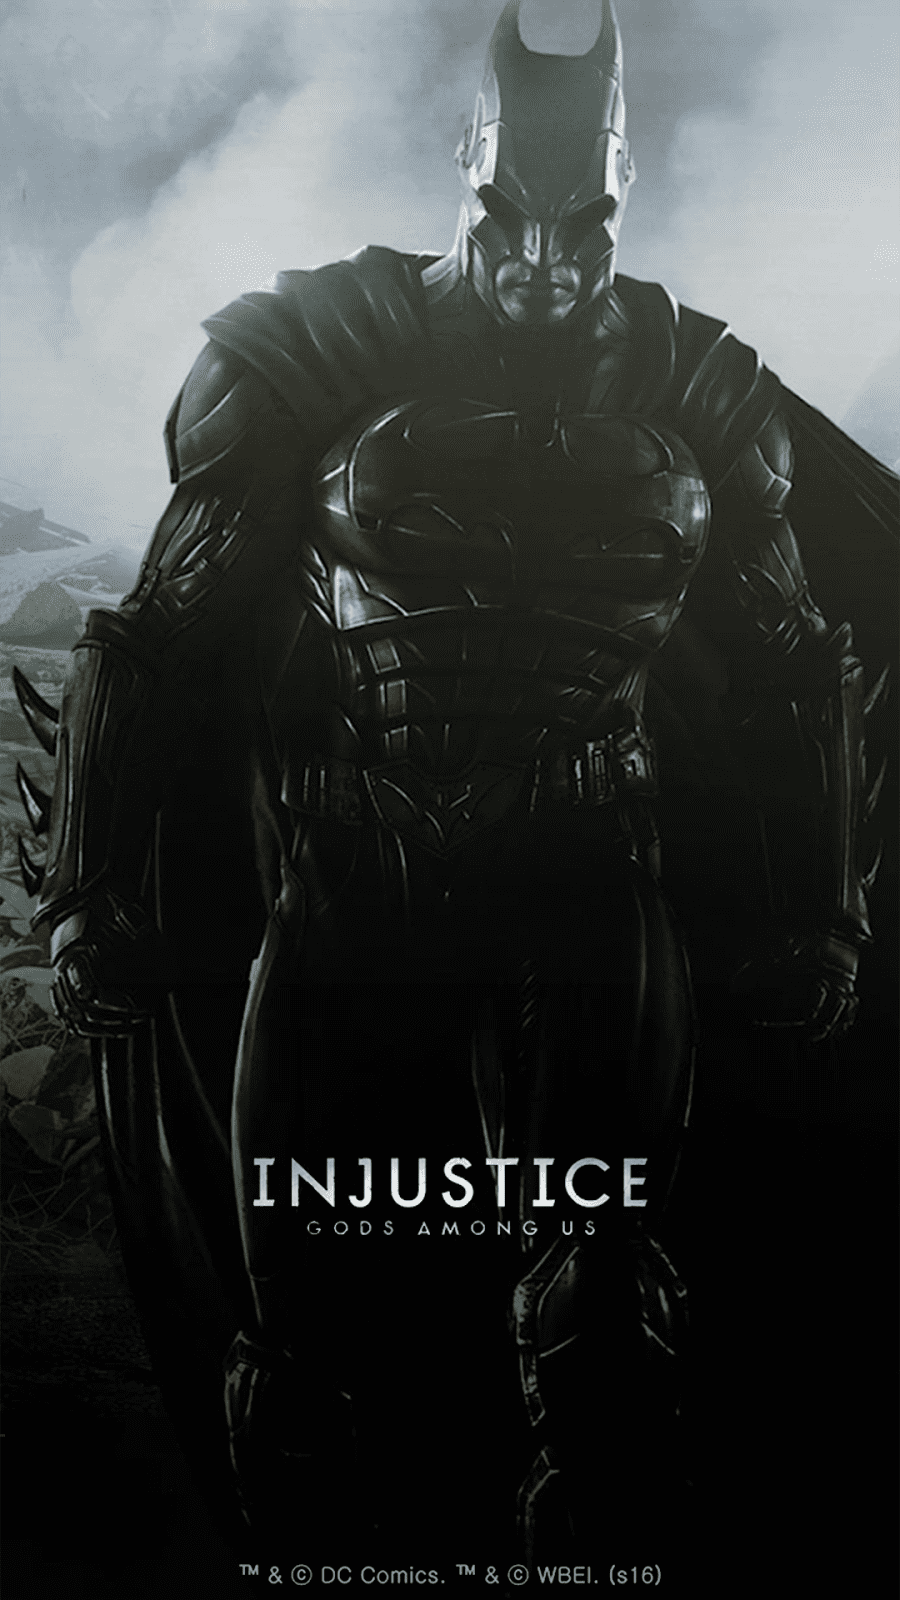 Download Galaxy S7 Edge Injustice Edition Stock Wallpapers